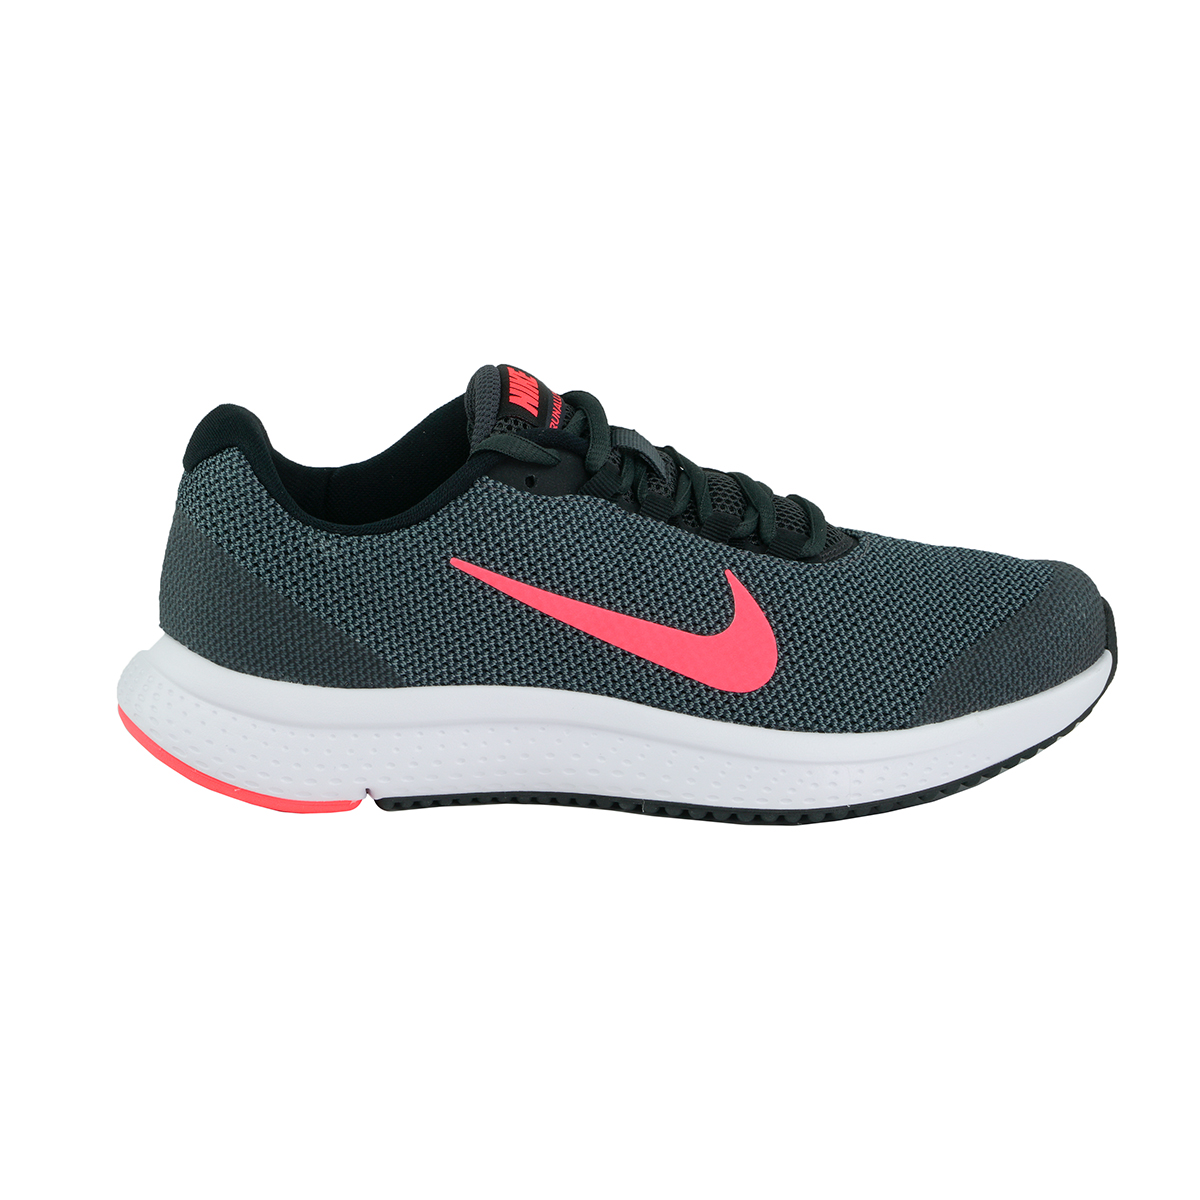 c2f8bb6e944 Details about Nike Women s RunAllDay Running Shoes